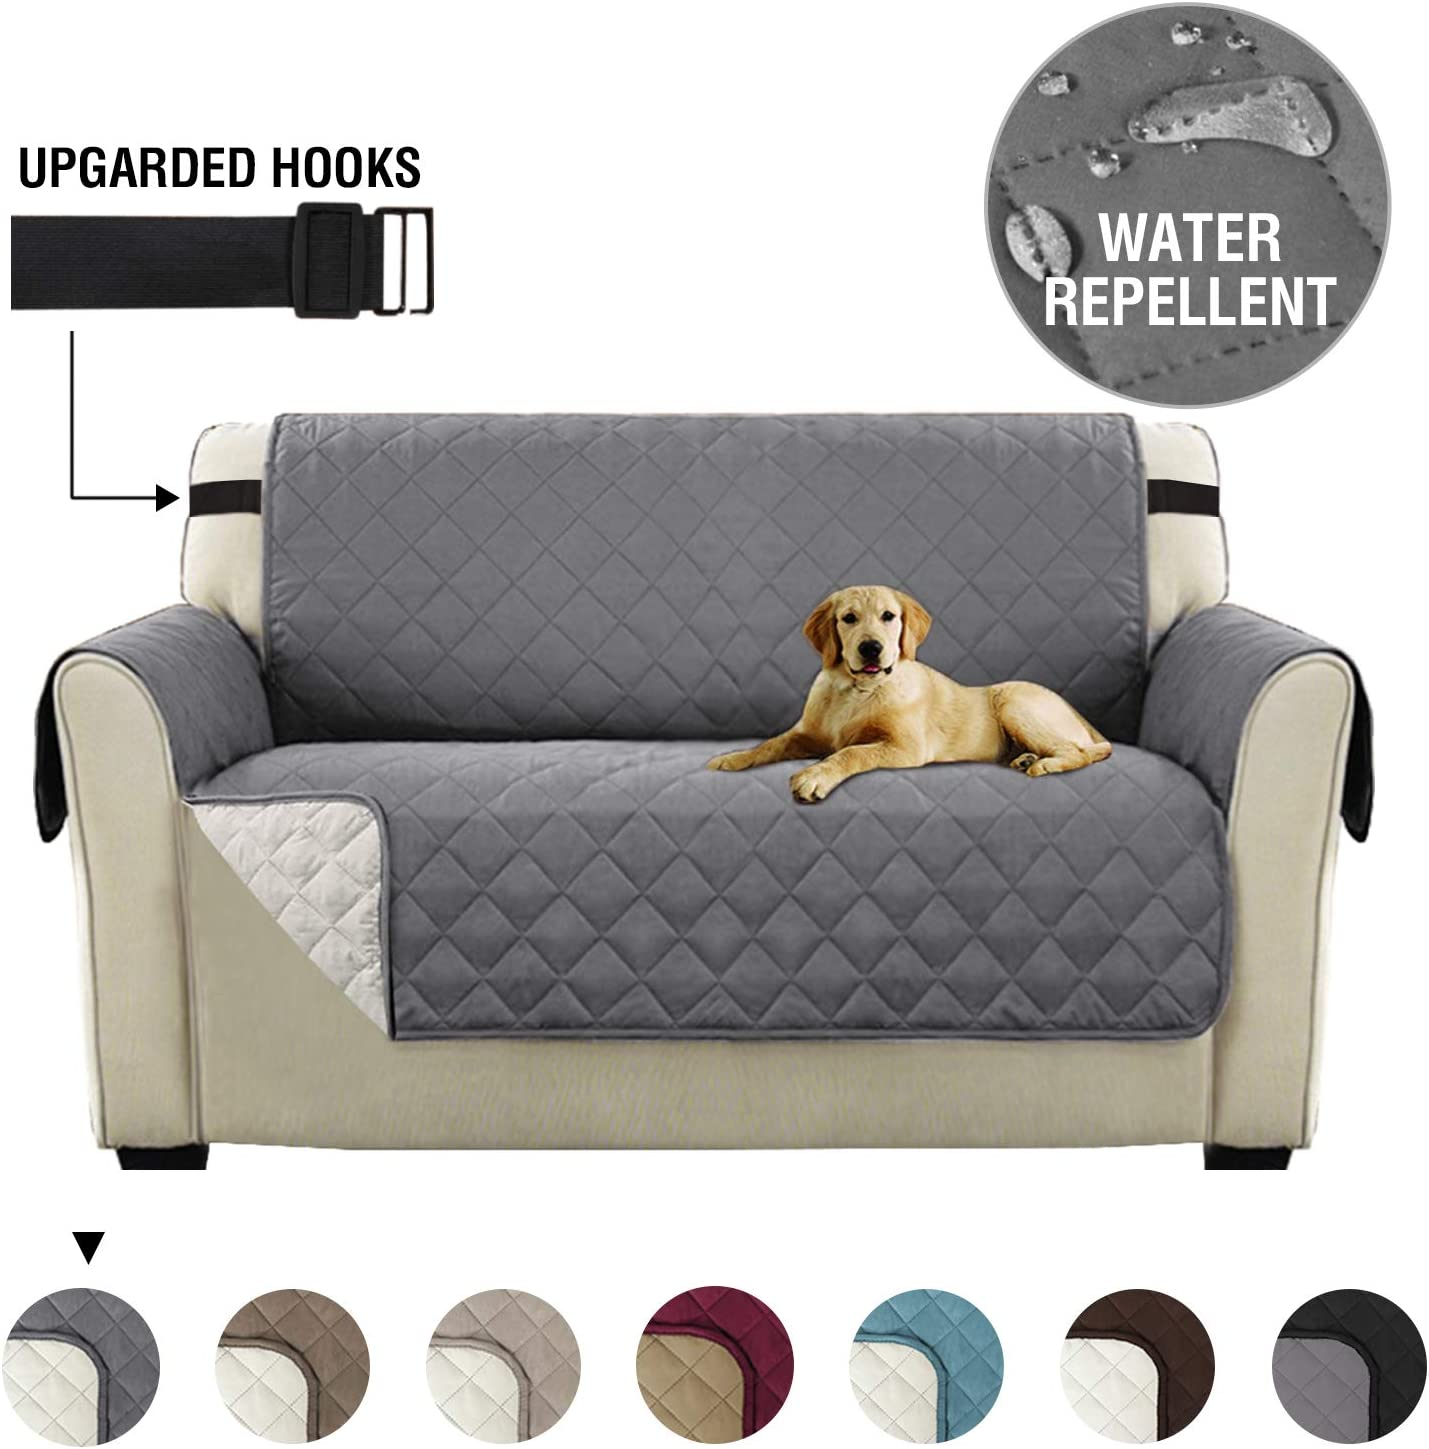 Sofa Slipcover Reversible Sofa Cover 2 Seater Furniture Protector Cover with Adjustable Elastic Straps, Seat Width Up to 46